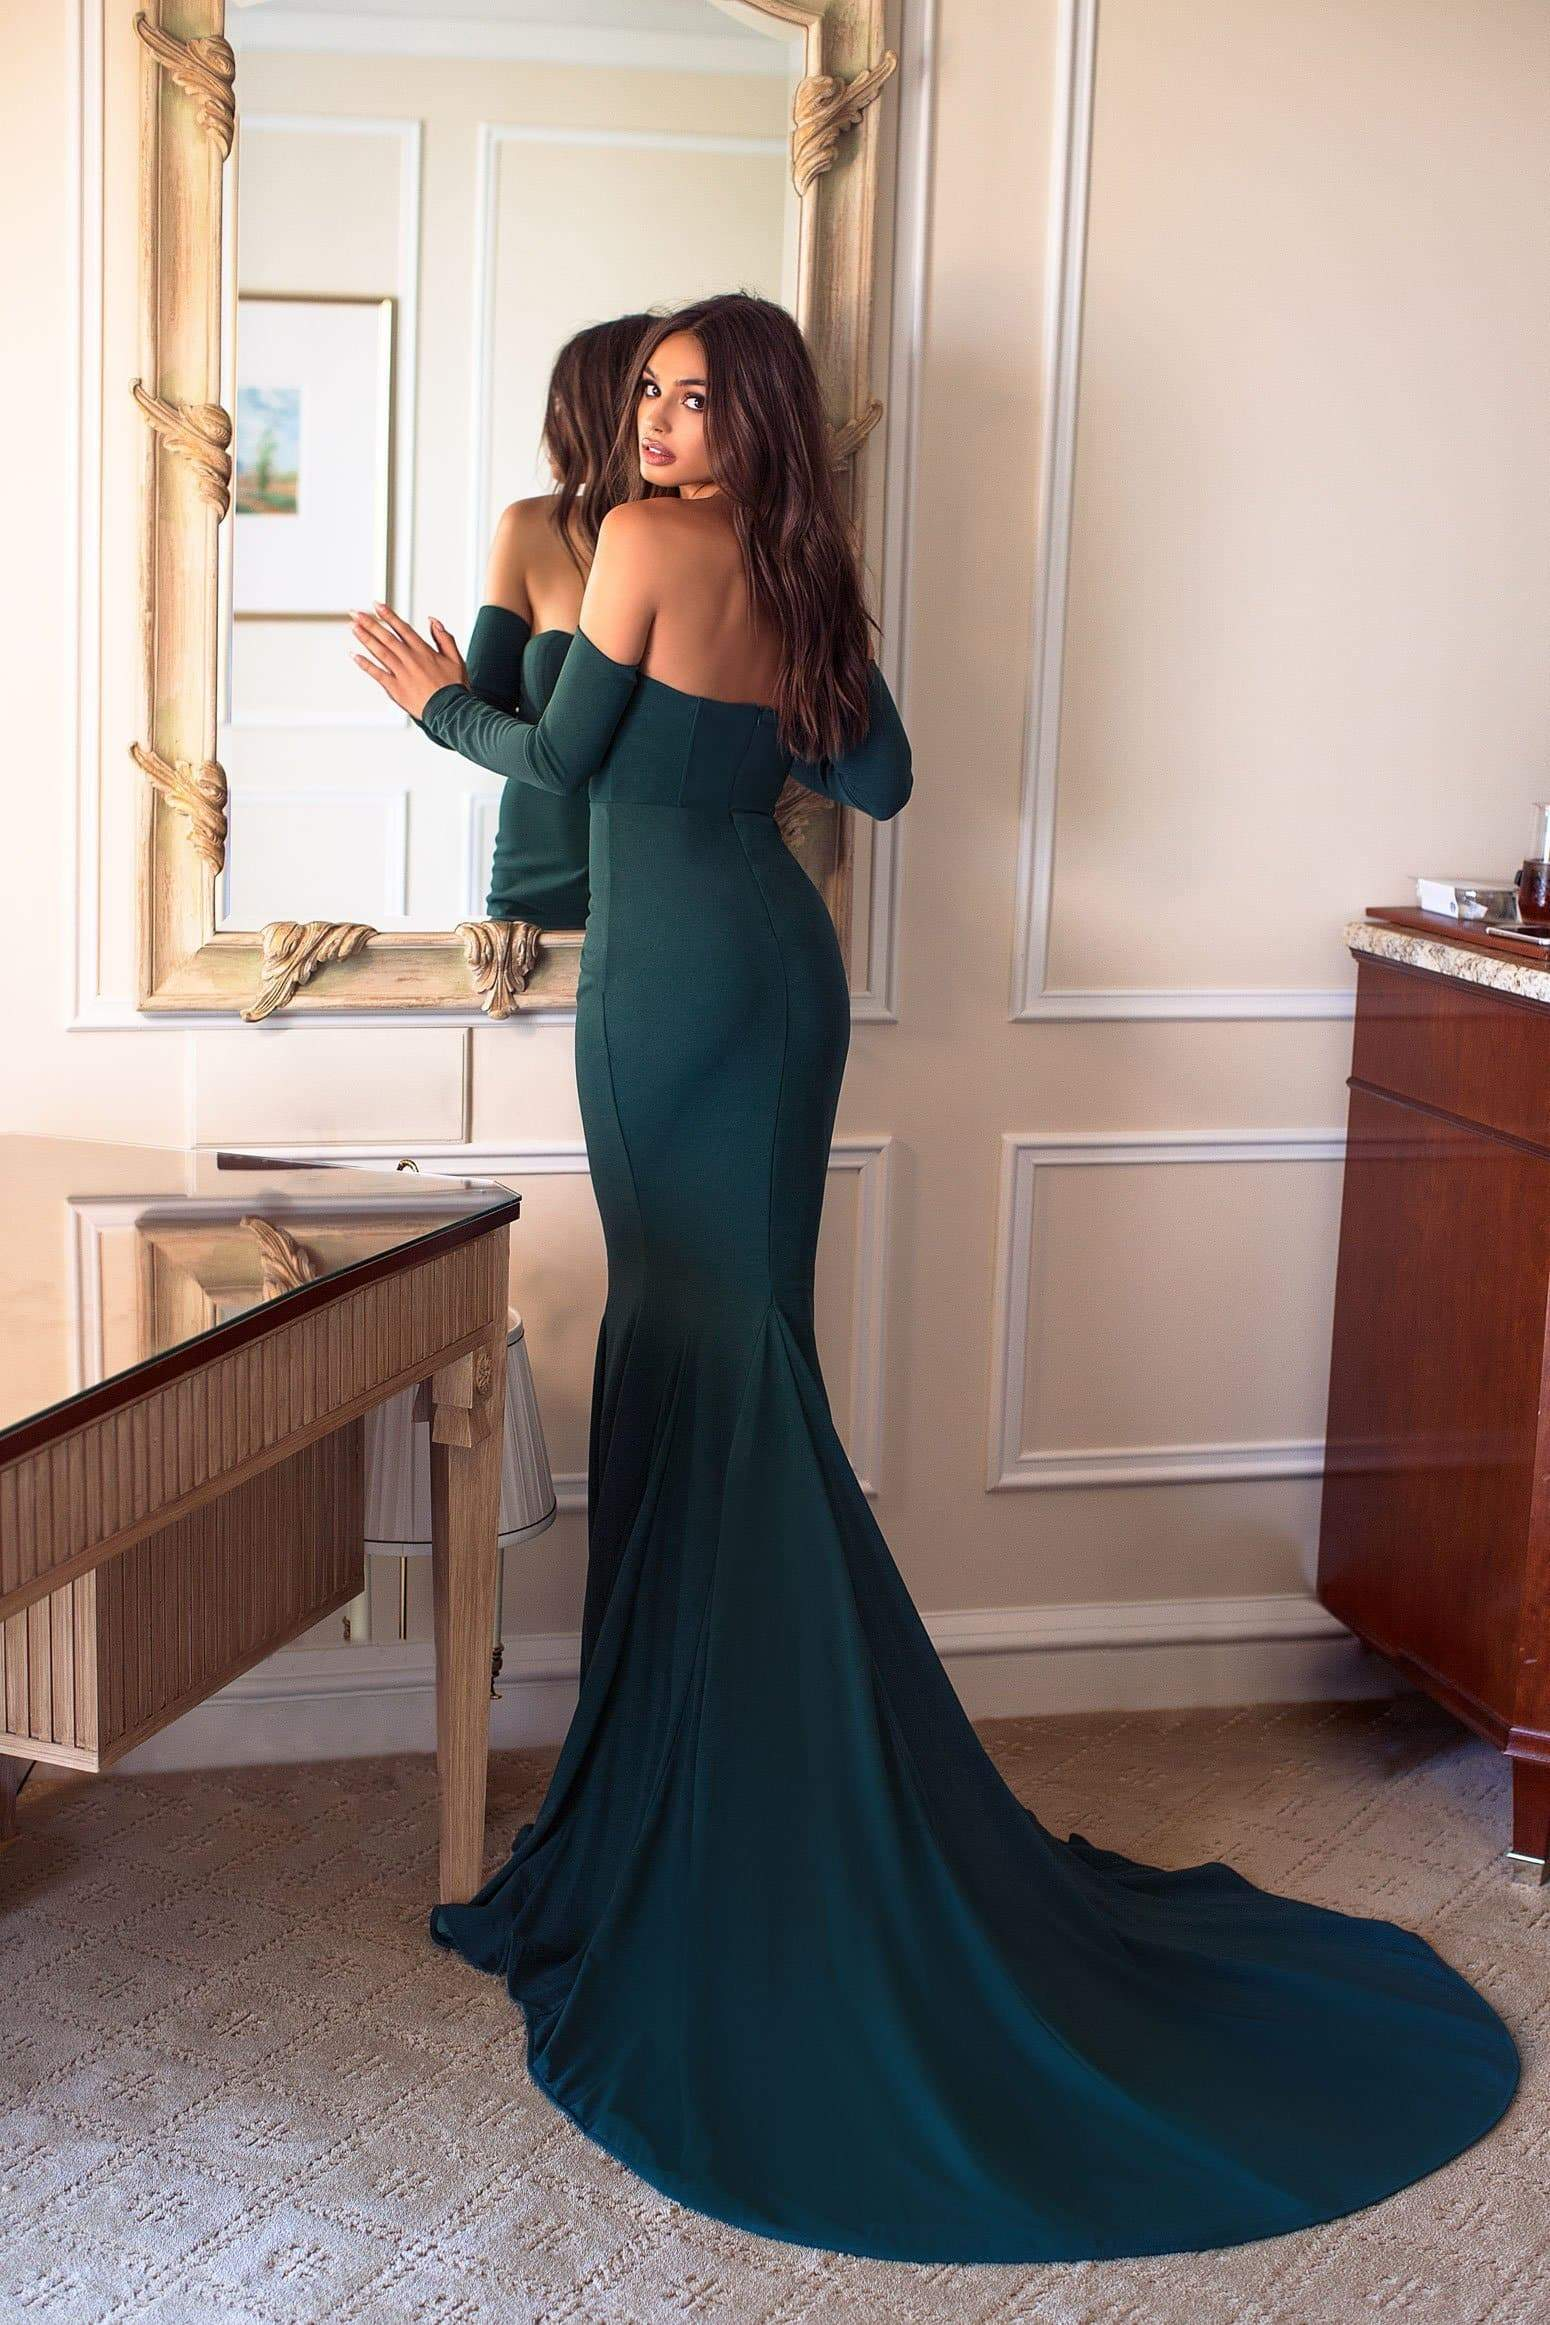 Salma - Emerald Off Shoulder Dress in Crepe Fabric with Padded Cups